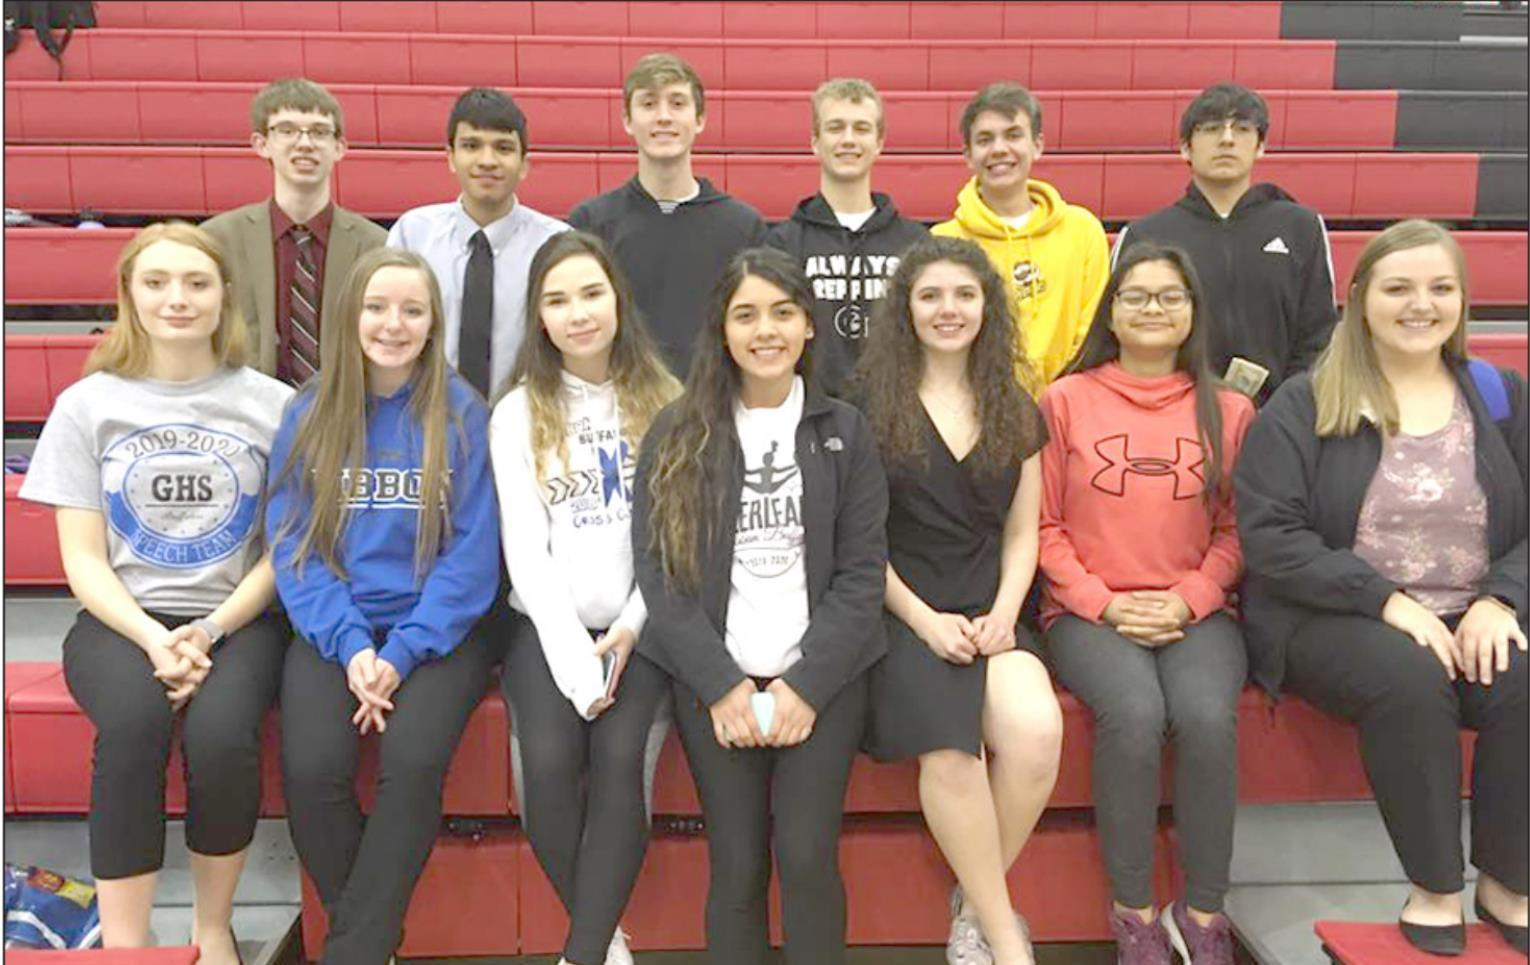 Members of the Gibbon speech team who competed at the LouPlatte Conference meet were, front row, left to right, Taylor Schubauer, Lindsay Wilkens, Miracle Kenkel, Xipatly Irlas, Delaney Tracy, Jiromi Corona, and Zoe Anderson; and back row, left to right,